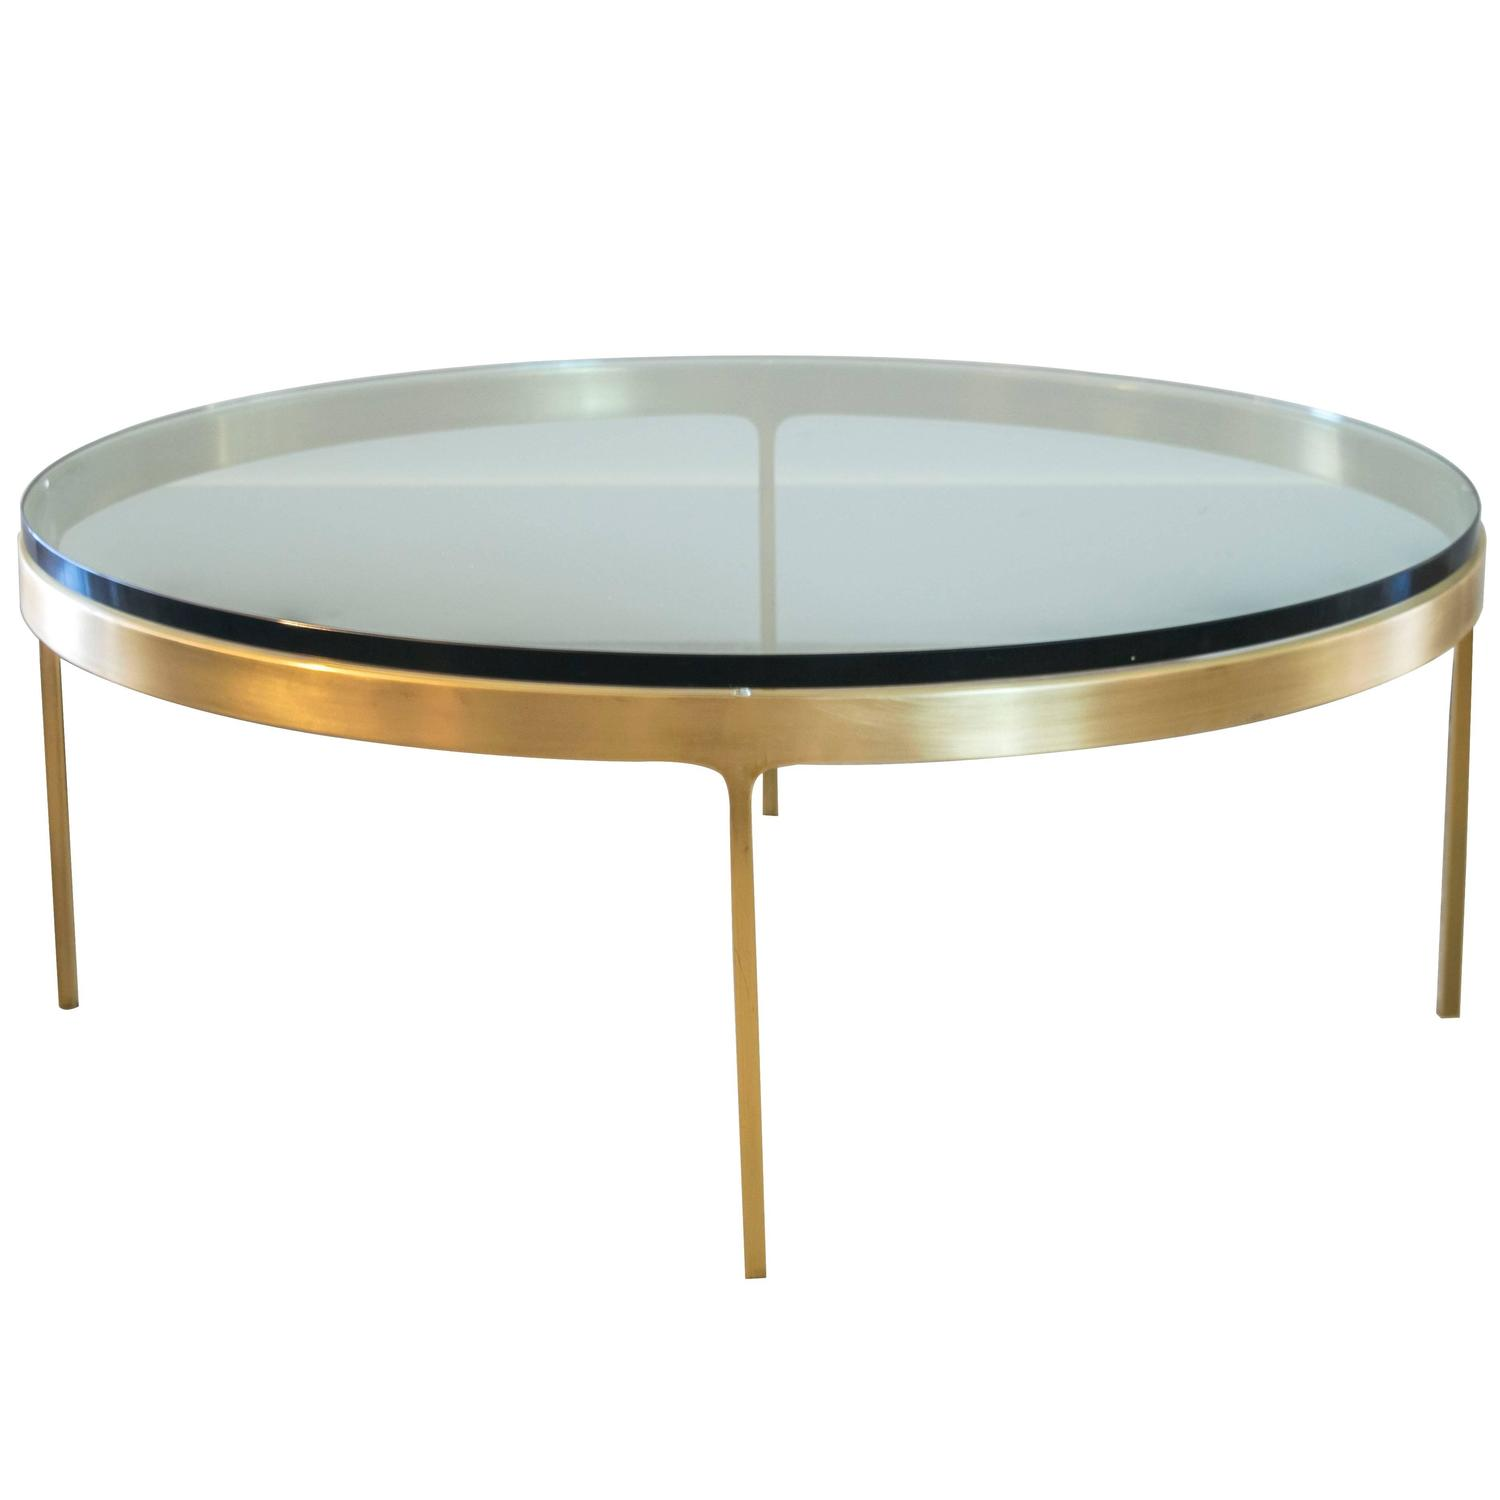 Solid Brass Round Coffee Table by Nicos Zographos at 1stdibs